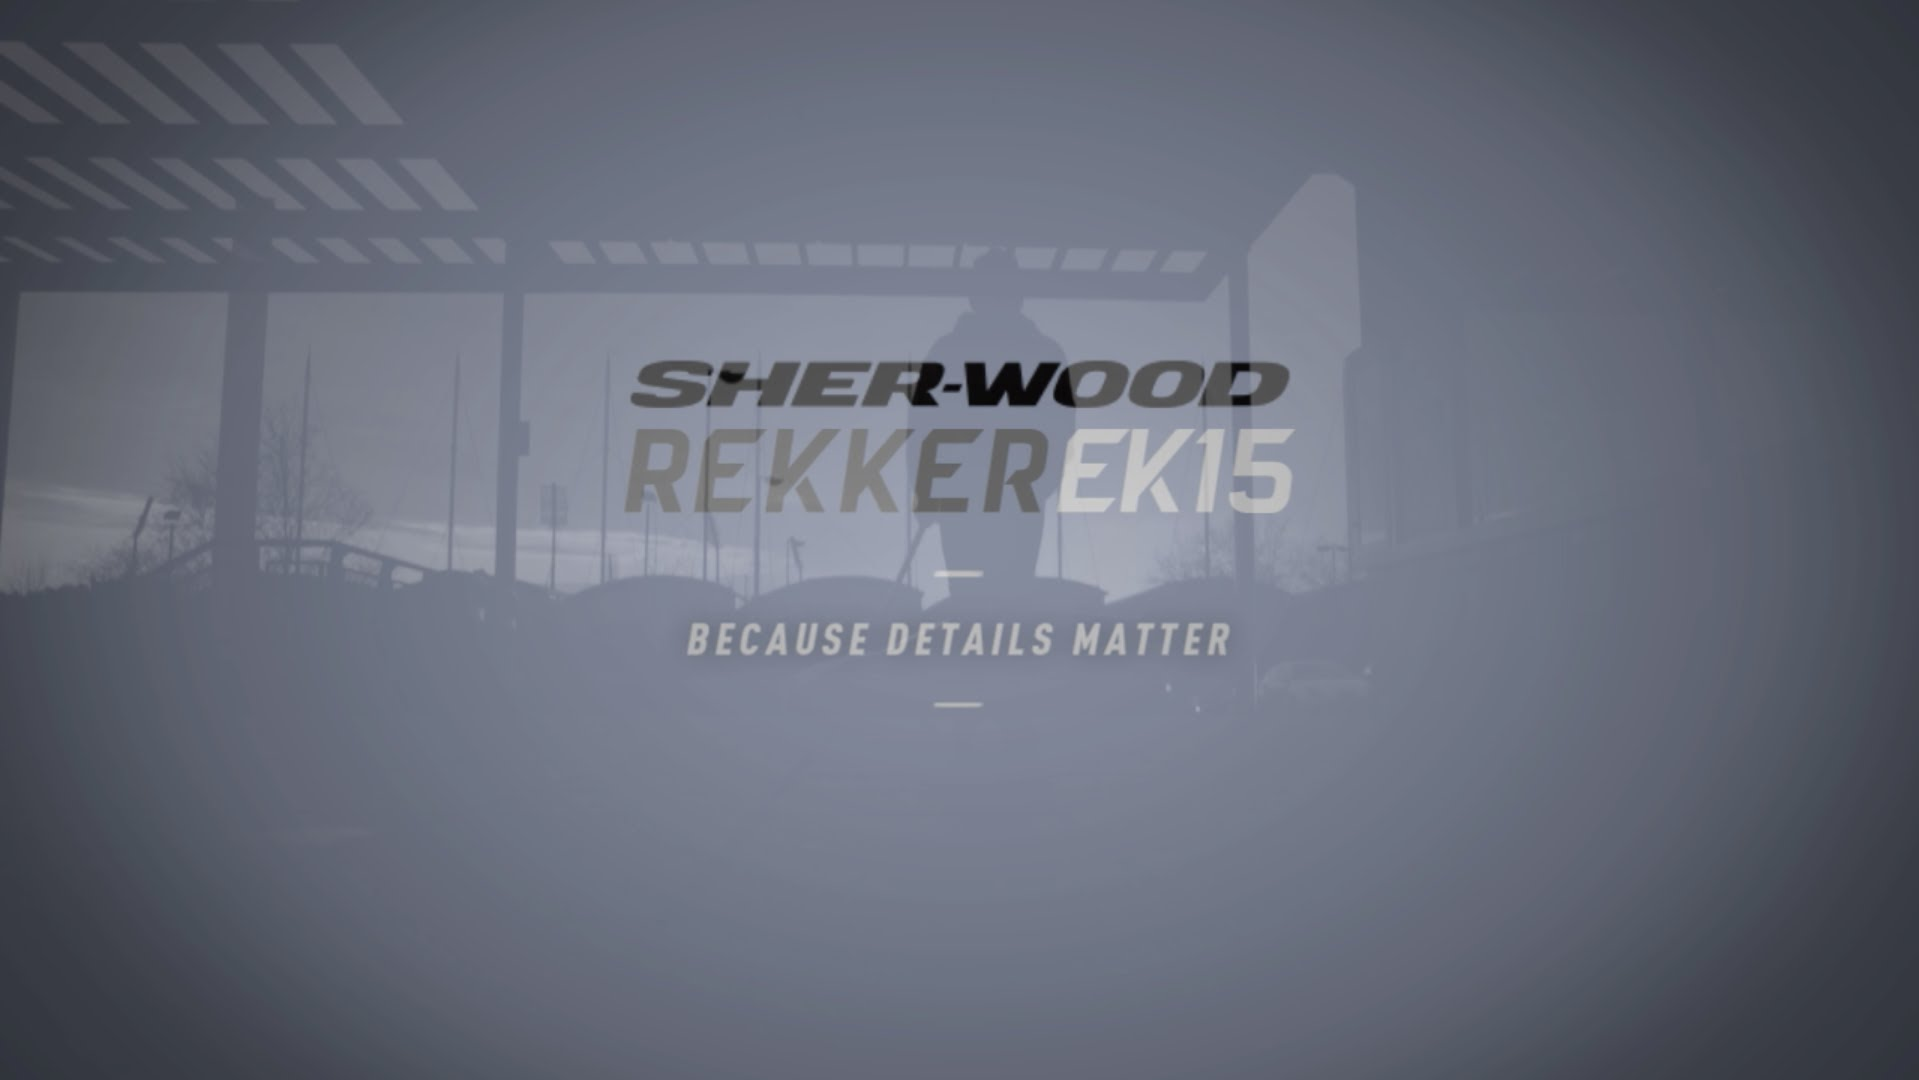 Sherwood Rekker EK15 Hockey Stick Review – Because Details Matter